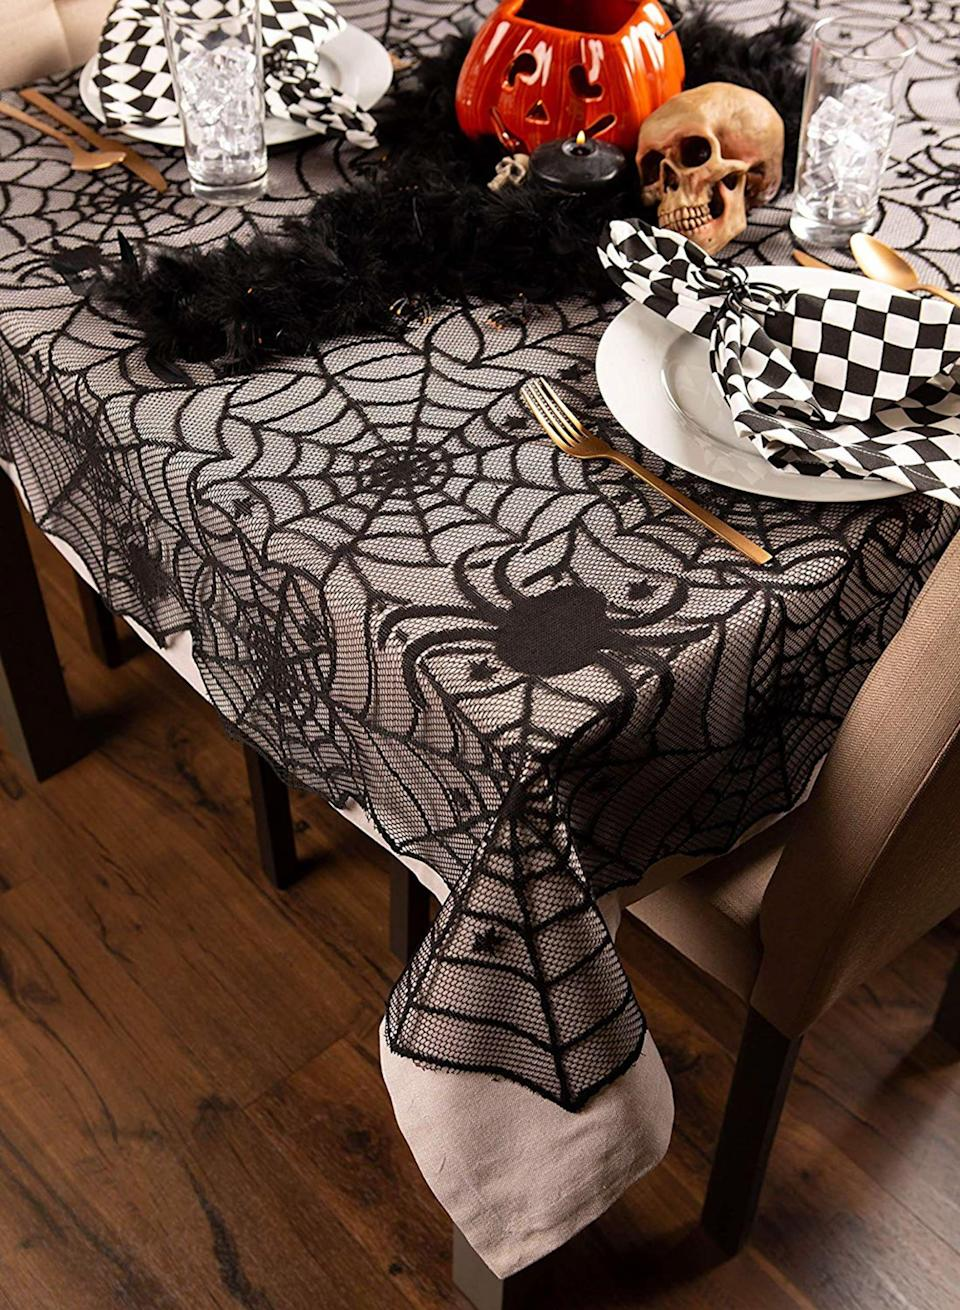 <p>Dress up a table in your room with spiders and cobwebs when you pick up the <span>Halloween Lace Tablecloth</span> ($27, originally $40) from Pier 1.</p>